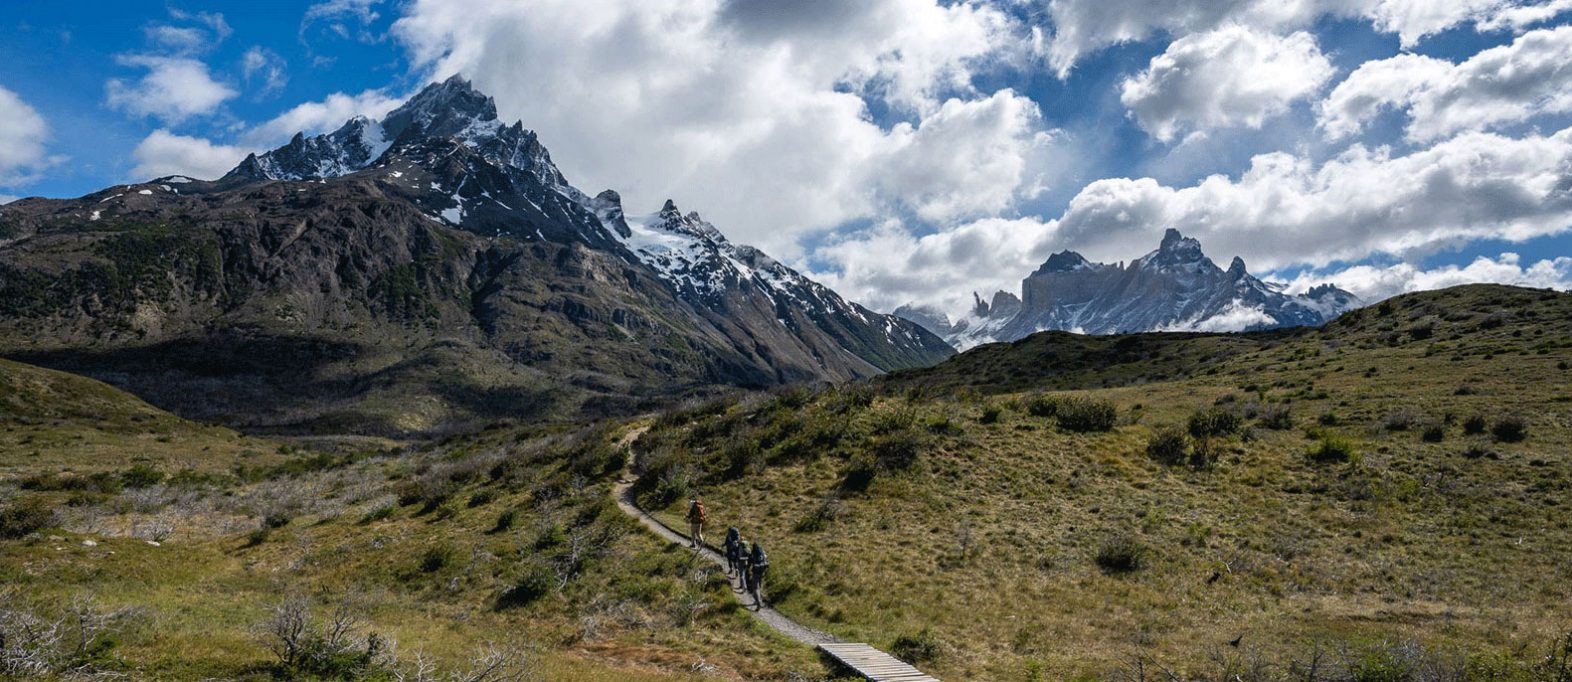 Torres del Paine Wandern   Chile Tipps